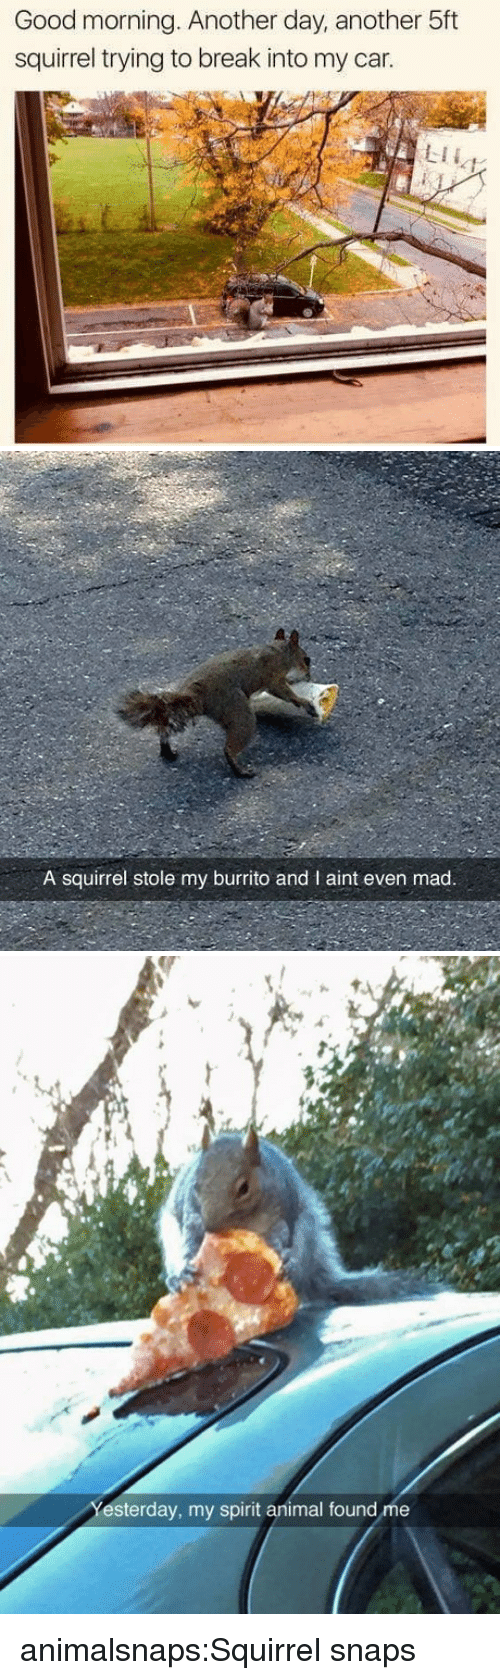 Tumblr, Good Morning, and Animal: Good morning. Another day, another 5ft  squirrel trying to break into my car.  LII   A squirrel stole my burrito and I aint even mad.   et  esterday, my spirit animal found me animalsnaps:Squirrel snaps